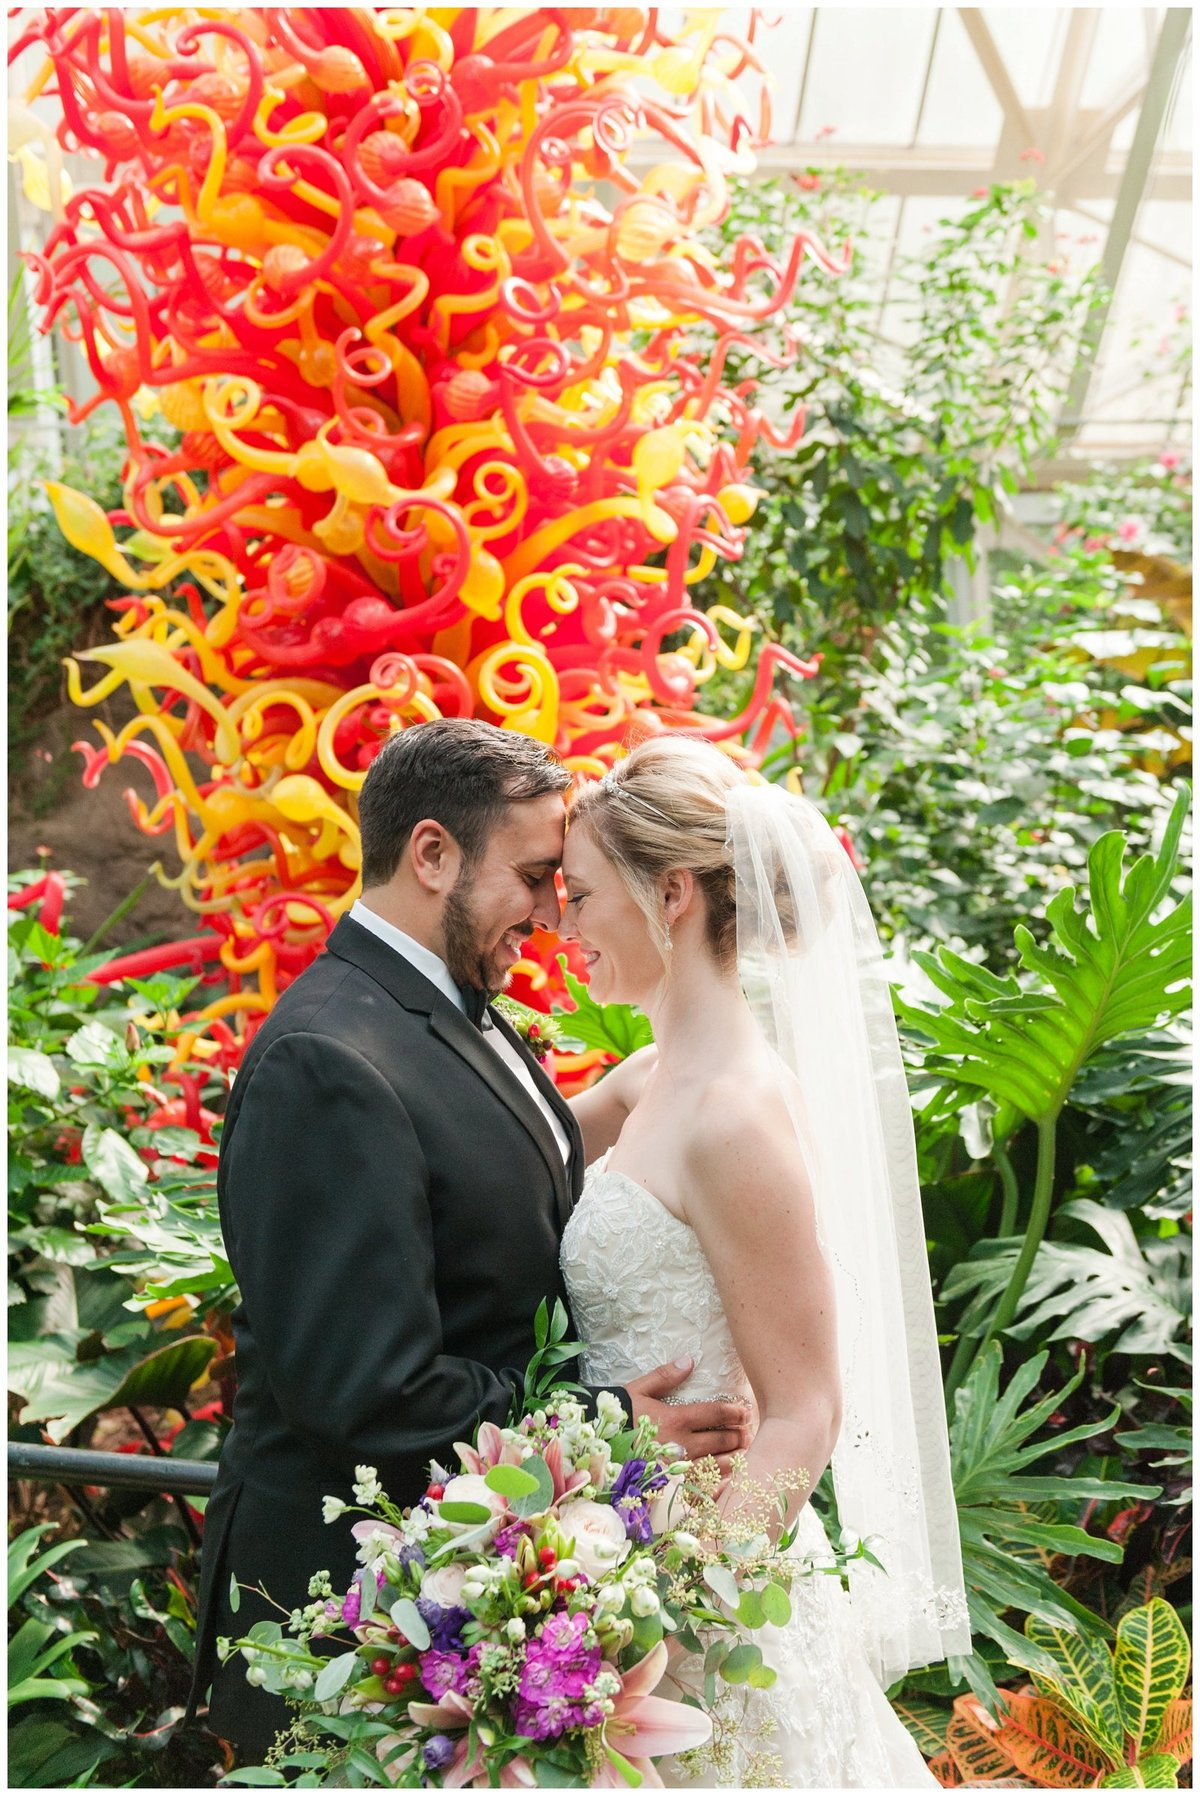 Franklin Park Conservatory Wedding The Palm House Bridal Garden Grove_0146